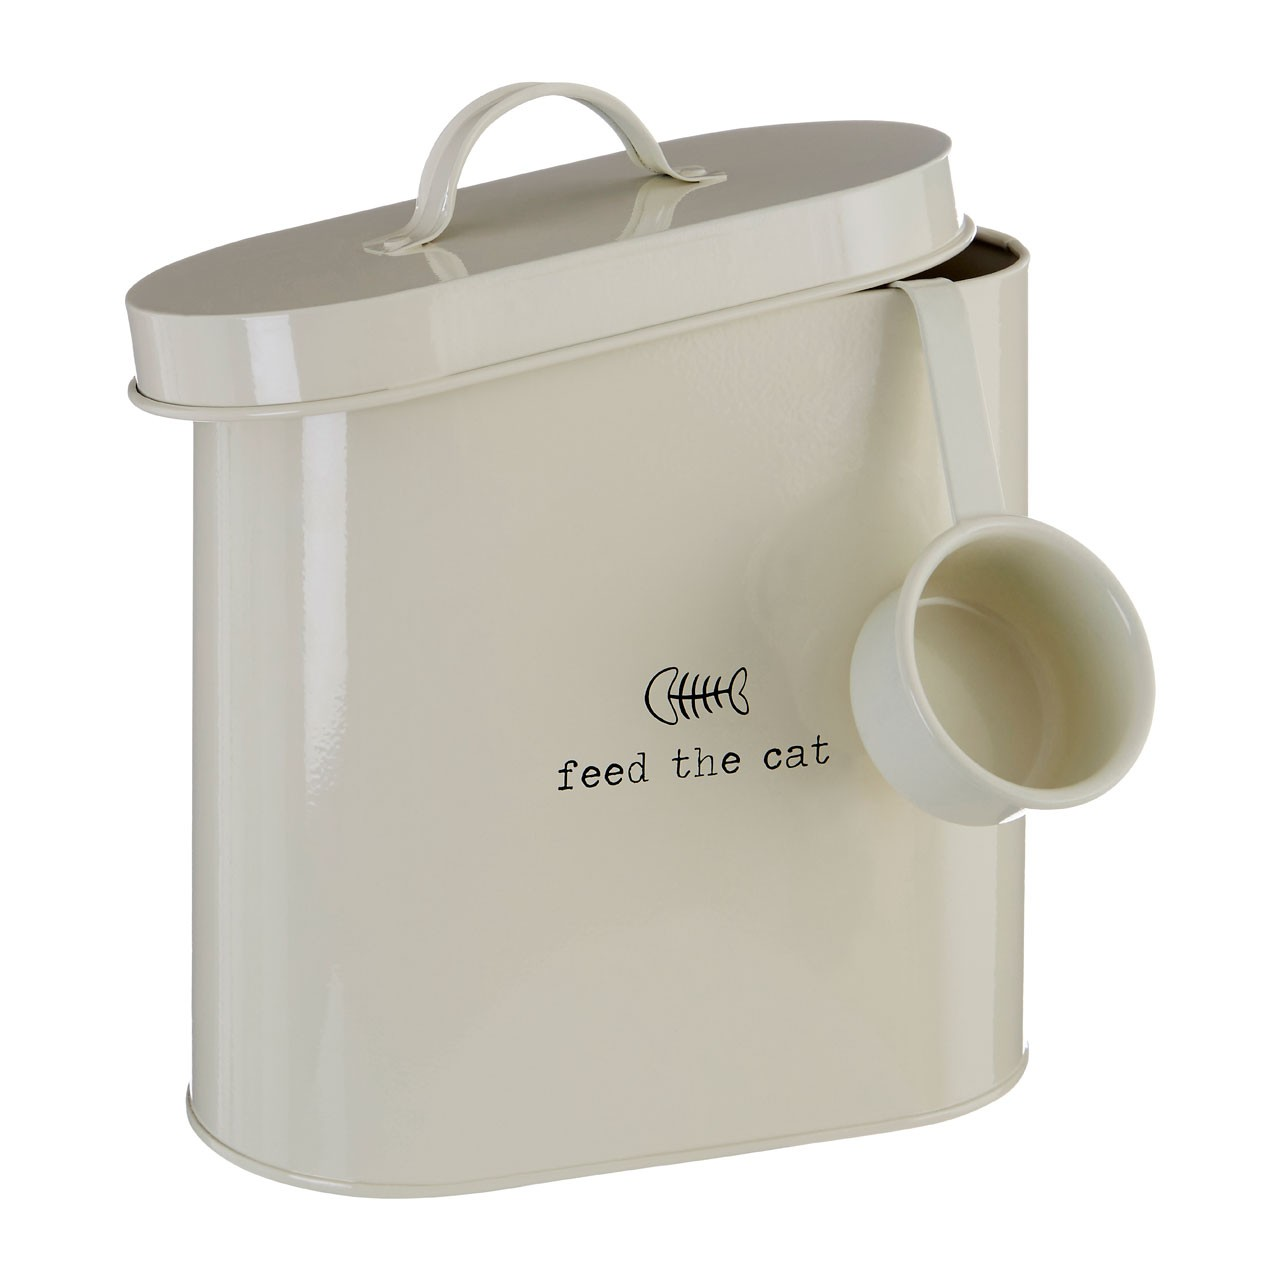 Adore Pets Feed The Cat Food Storage Bin With Spoon Cream